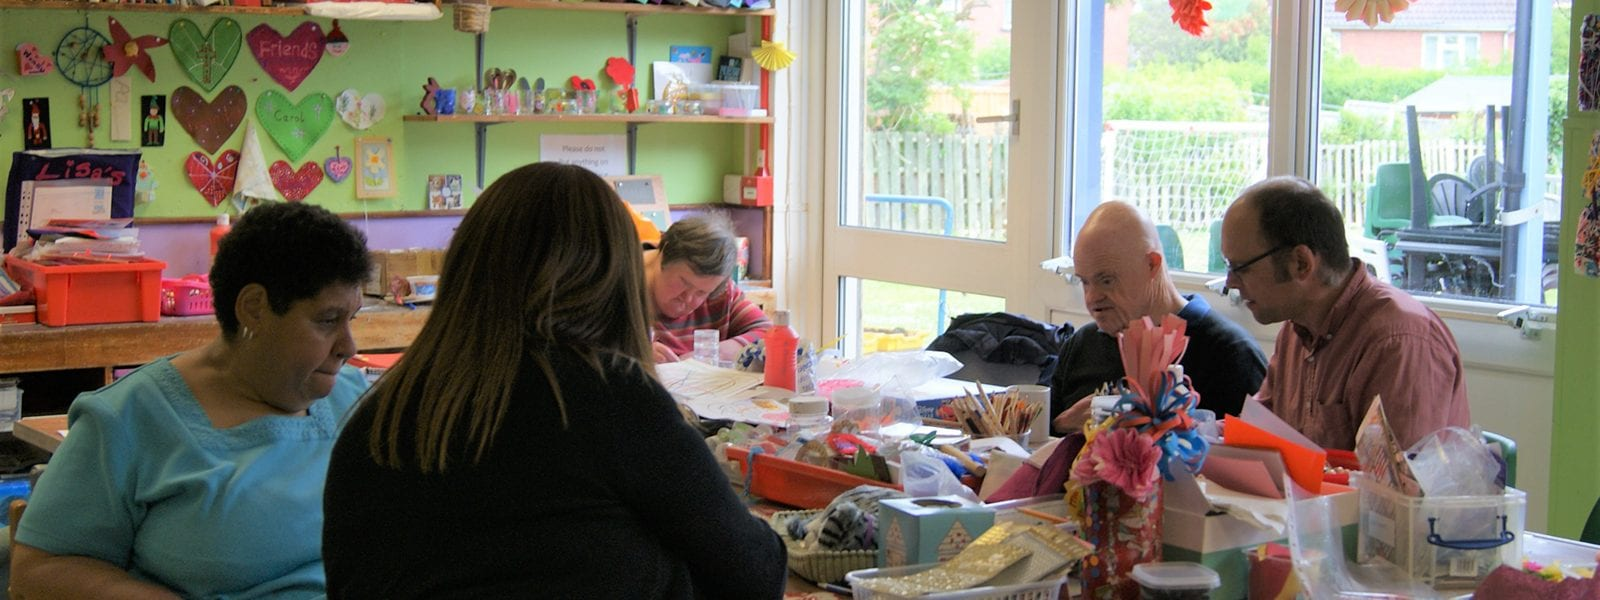 Craft room at Haven Day Centre Bristol